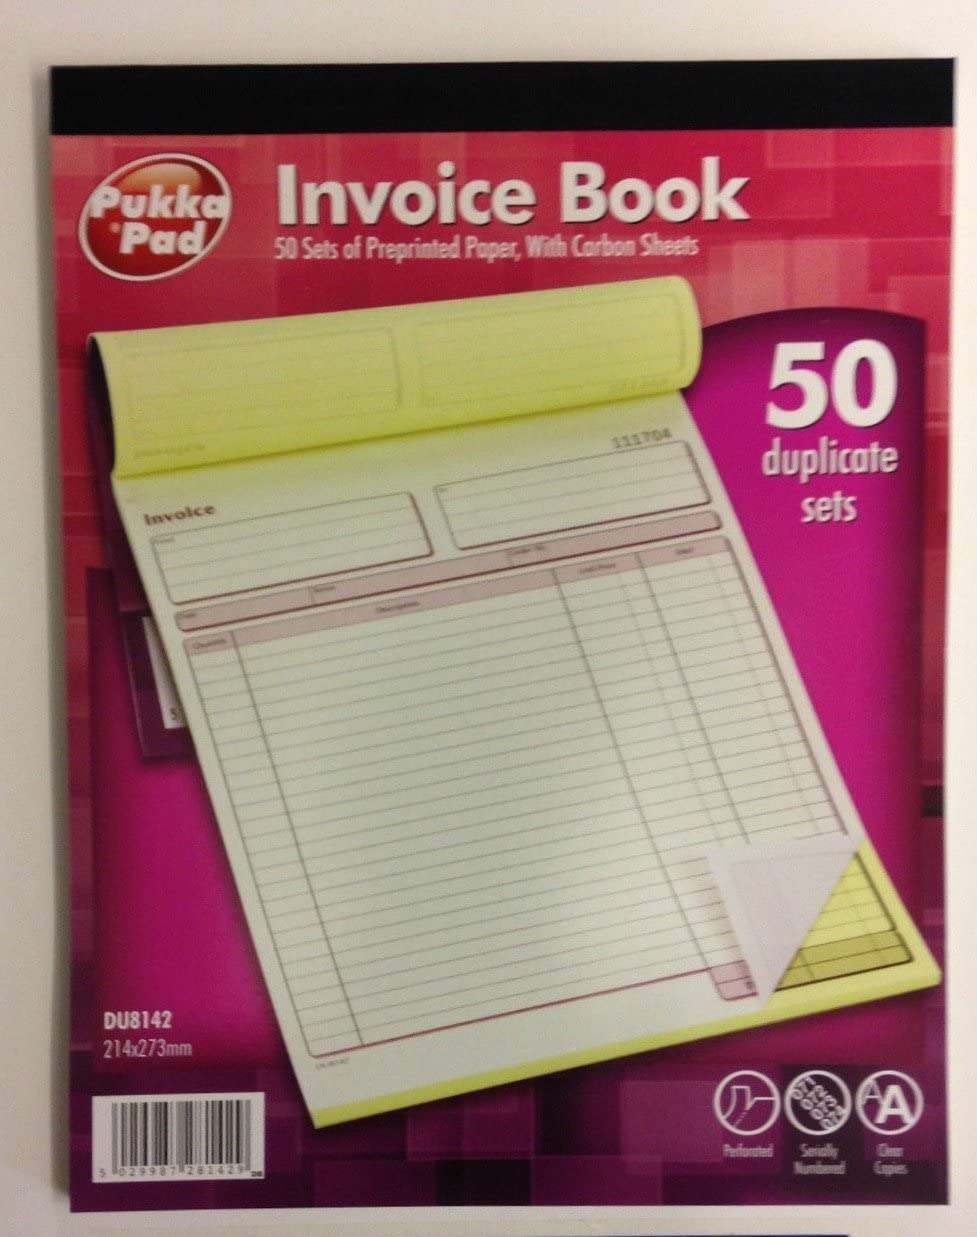 Duplicate Invoice Book NCR Carbonless Receipt Record Numbered Pad 50 Sets PUKKA